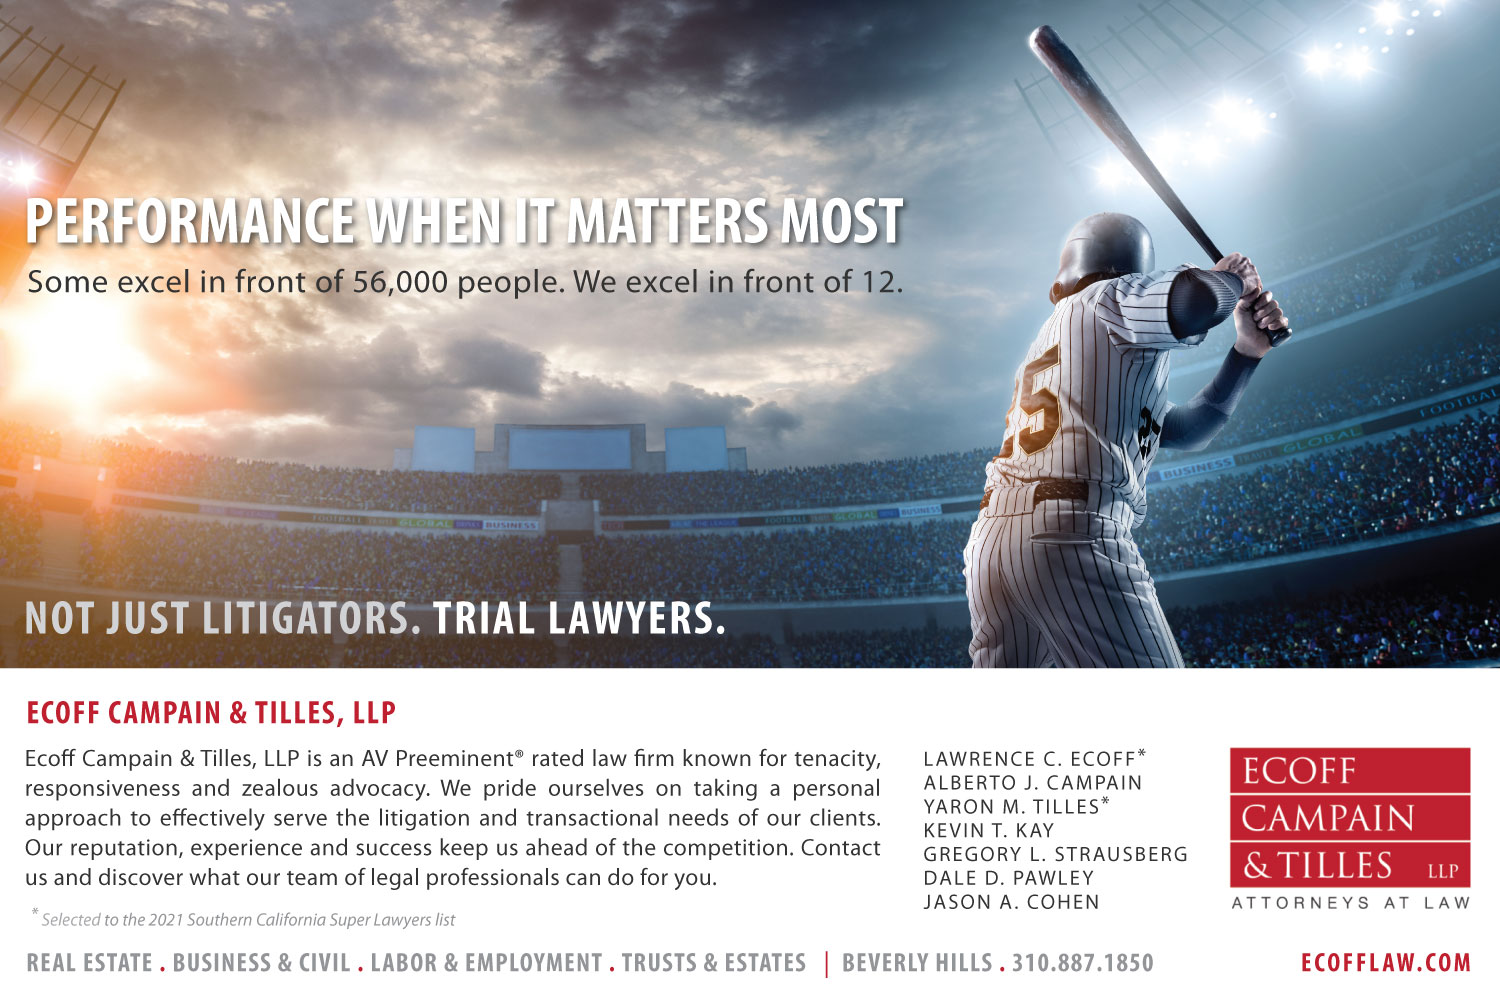 2021 Super Lawyers Ad for Ecoff Campain & Tilles, LLP